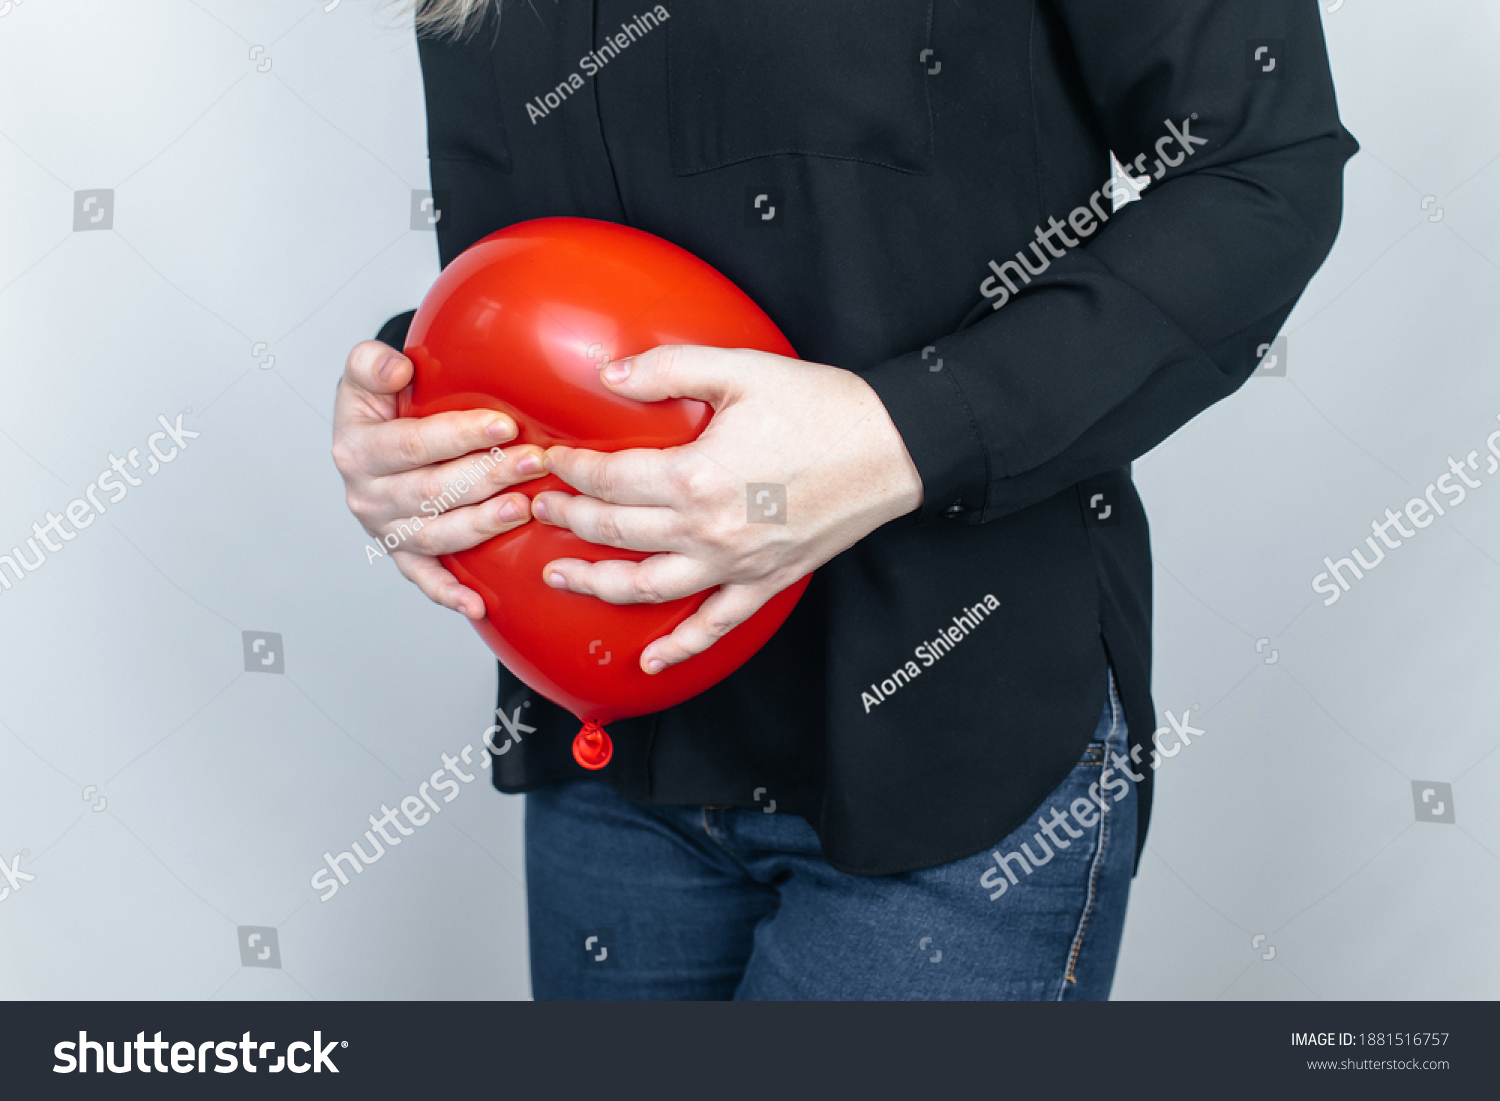 Bloating and flatulence concept. The woman holds a red balloon near the abdomen, which symbolizes bloating. Intestinal tract and digestive system. Problems with flatulence adn gastrointestinal tract #1881516757